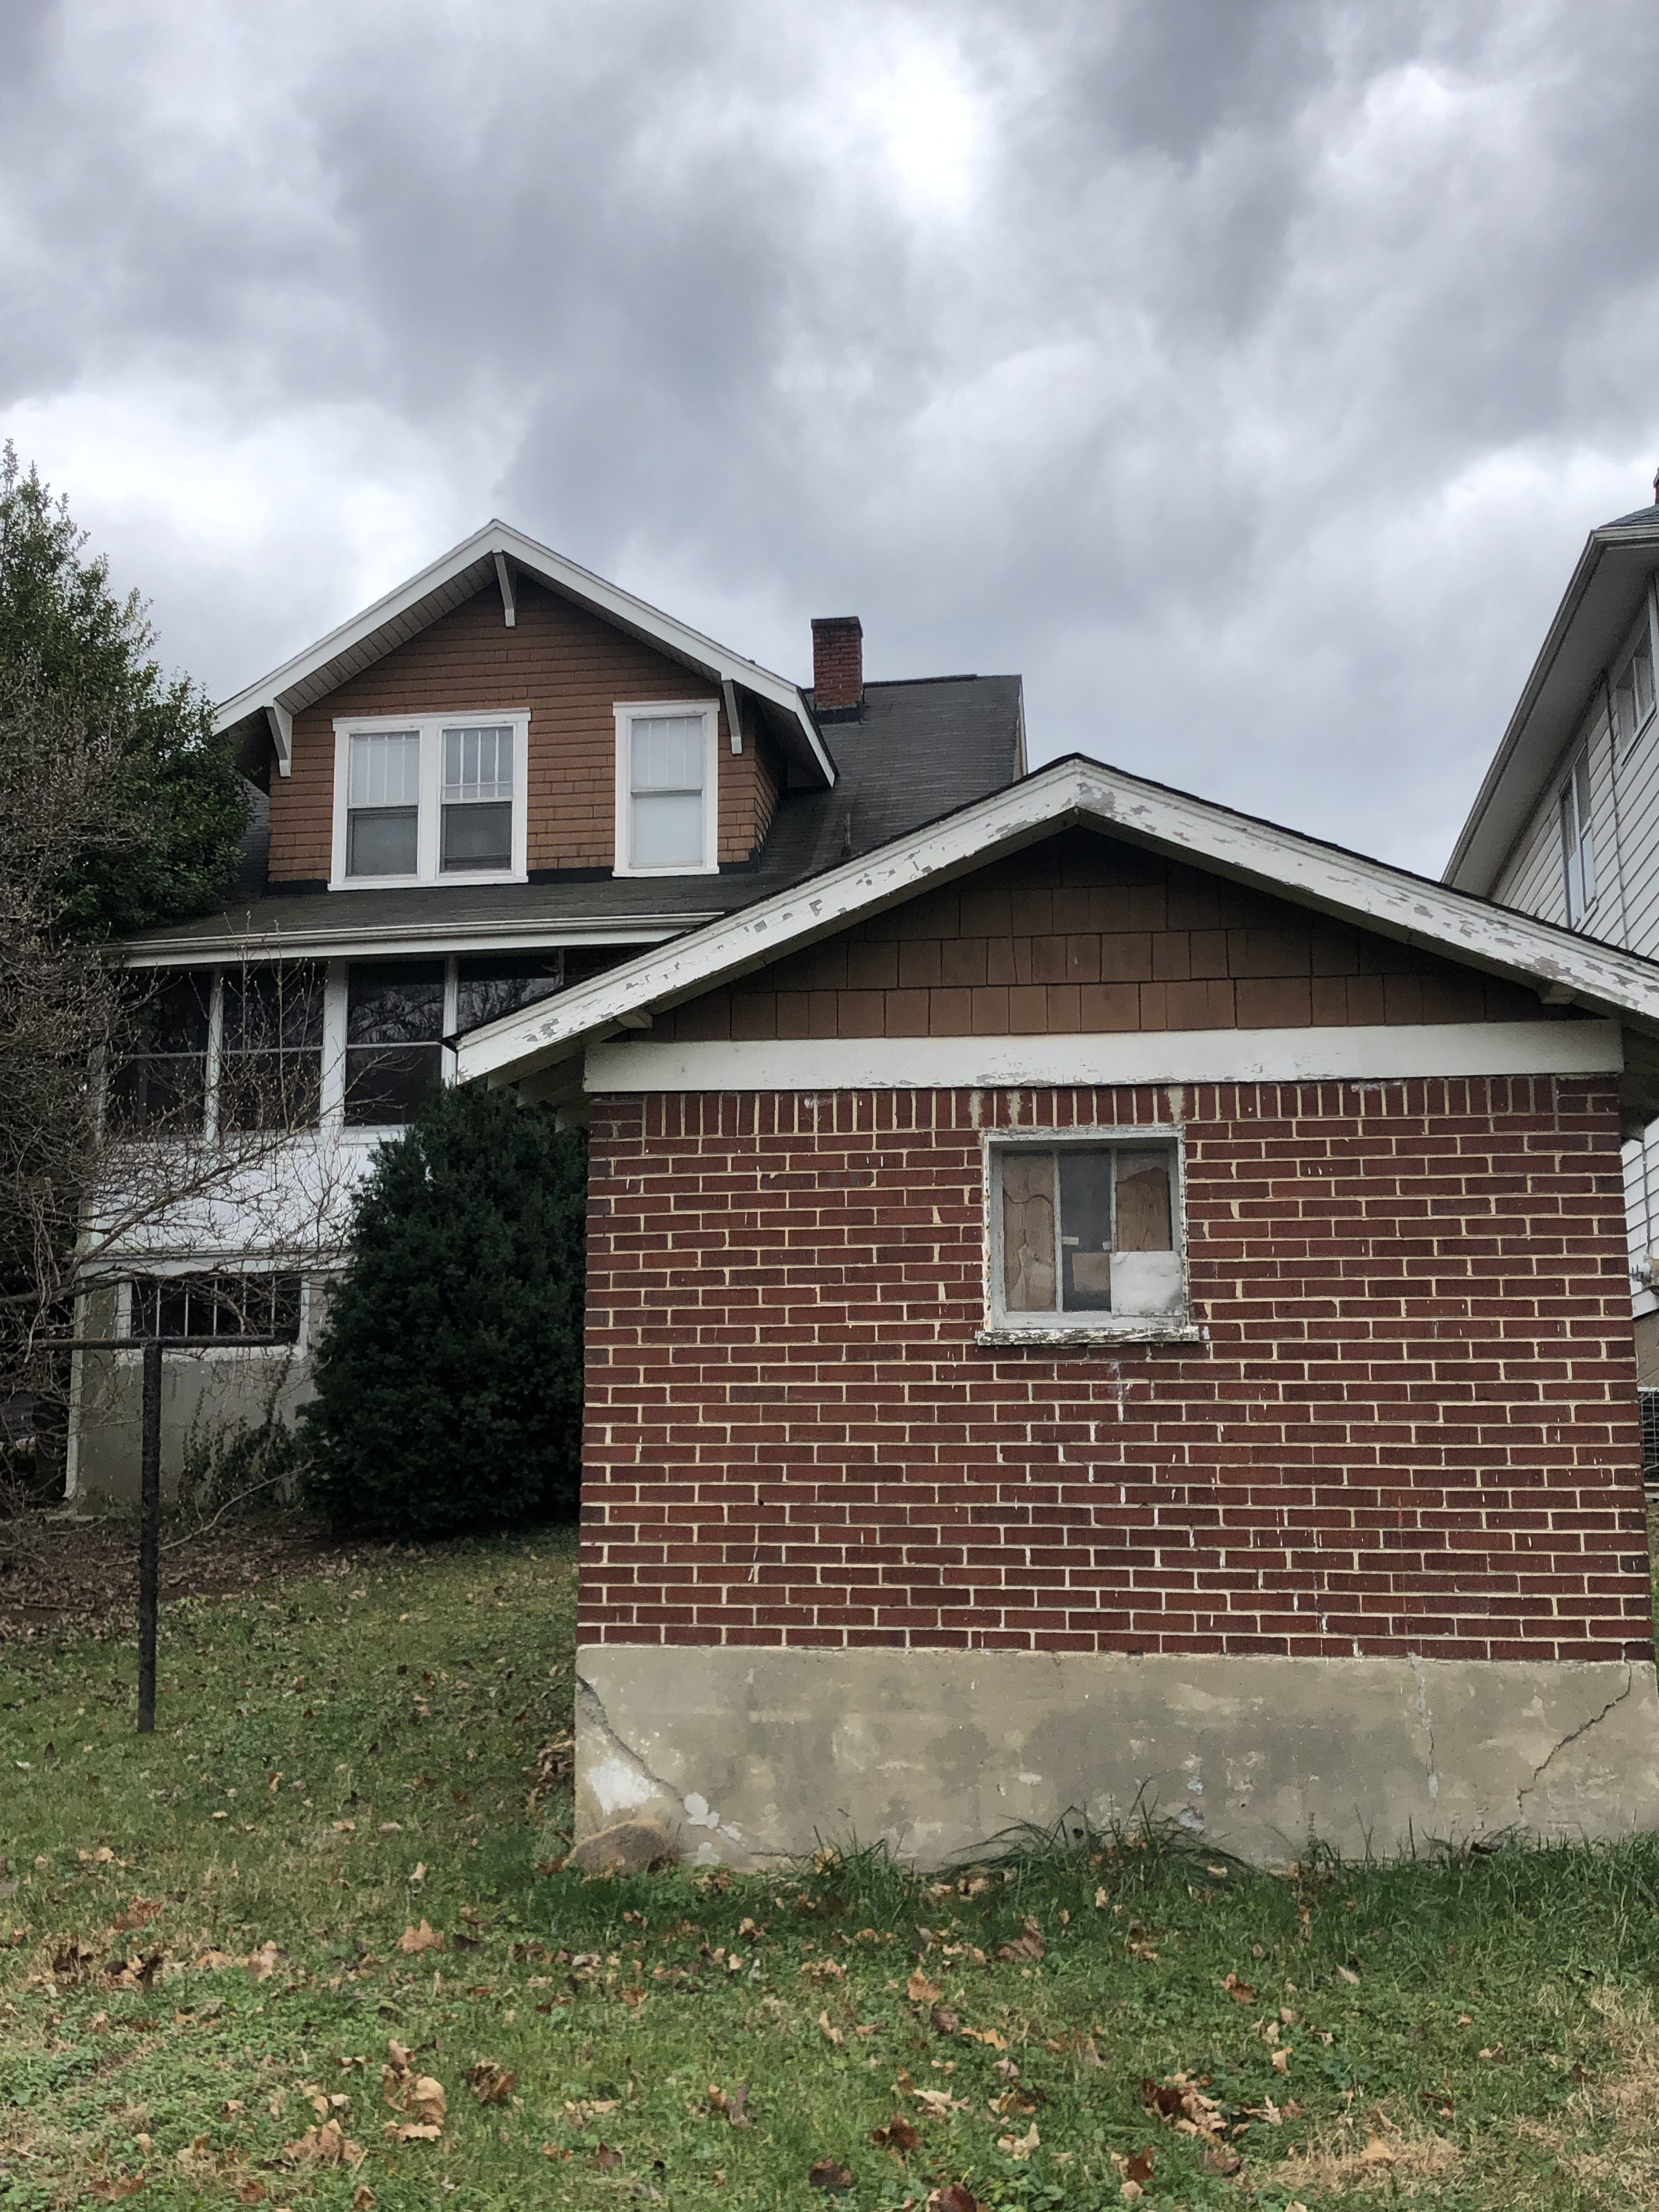 Garage For Rent Roanoke Va 938 Penmar Ave Se Roanoke Va Ard Properties Llc